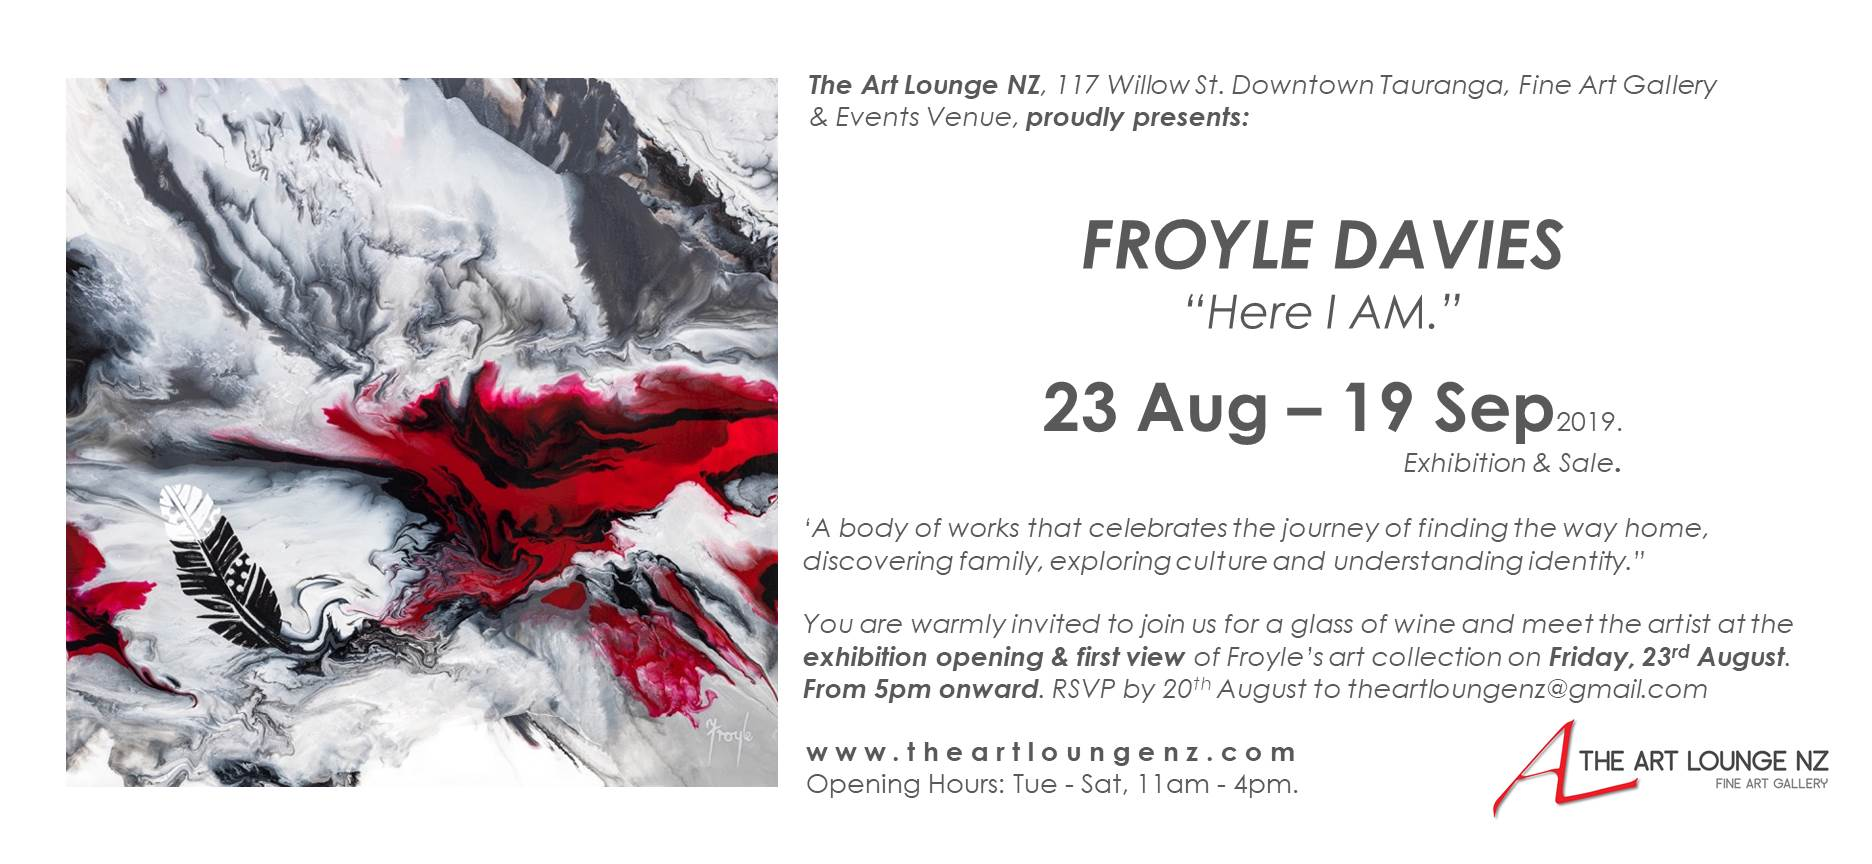 FROYLE DAVIES Exhibition Here I AM  23 Aug to 19 Sep 2019  at The Art Lounge NZ Invitation.jpg